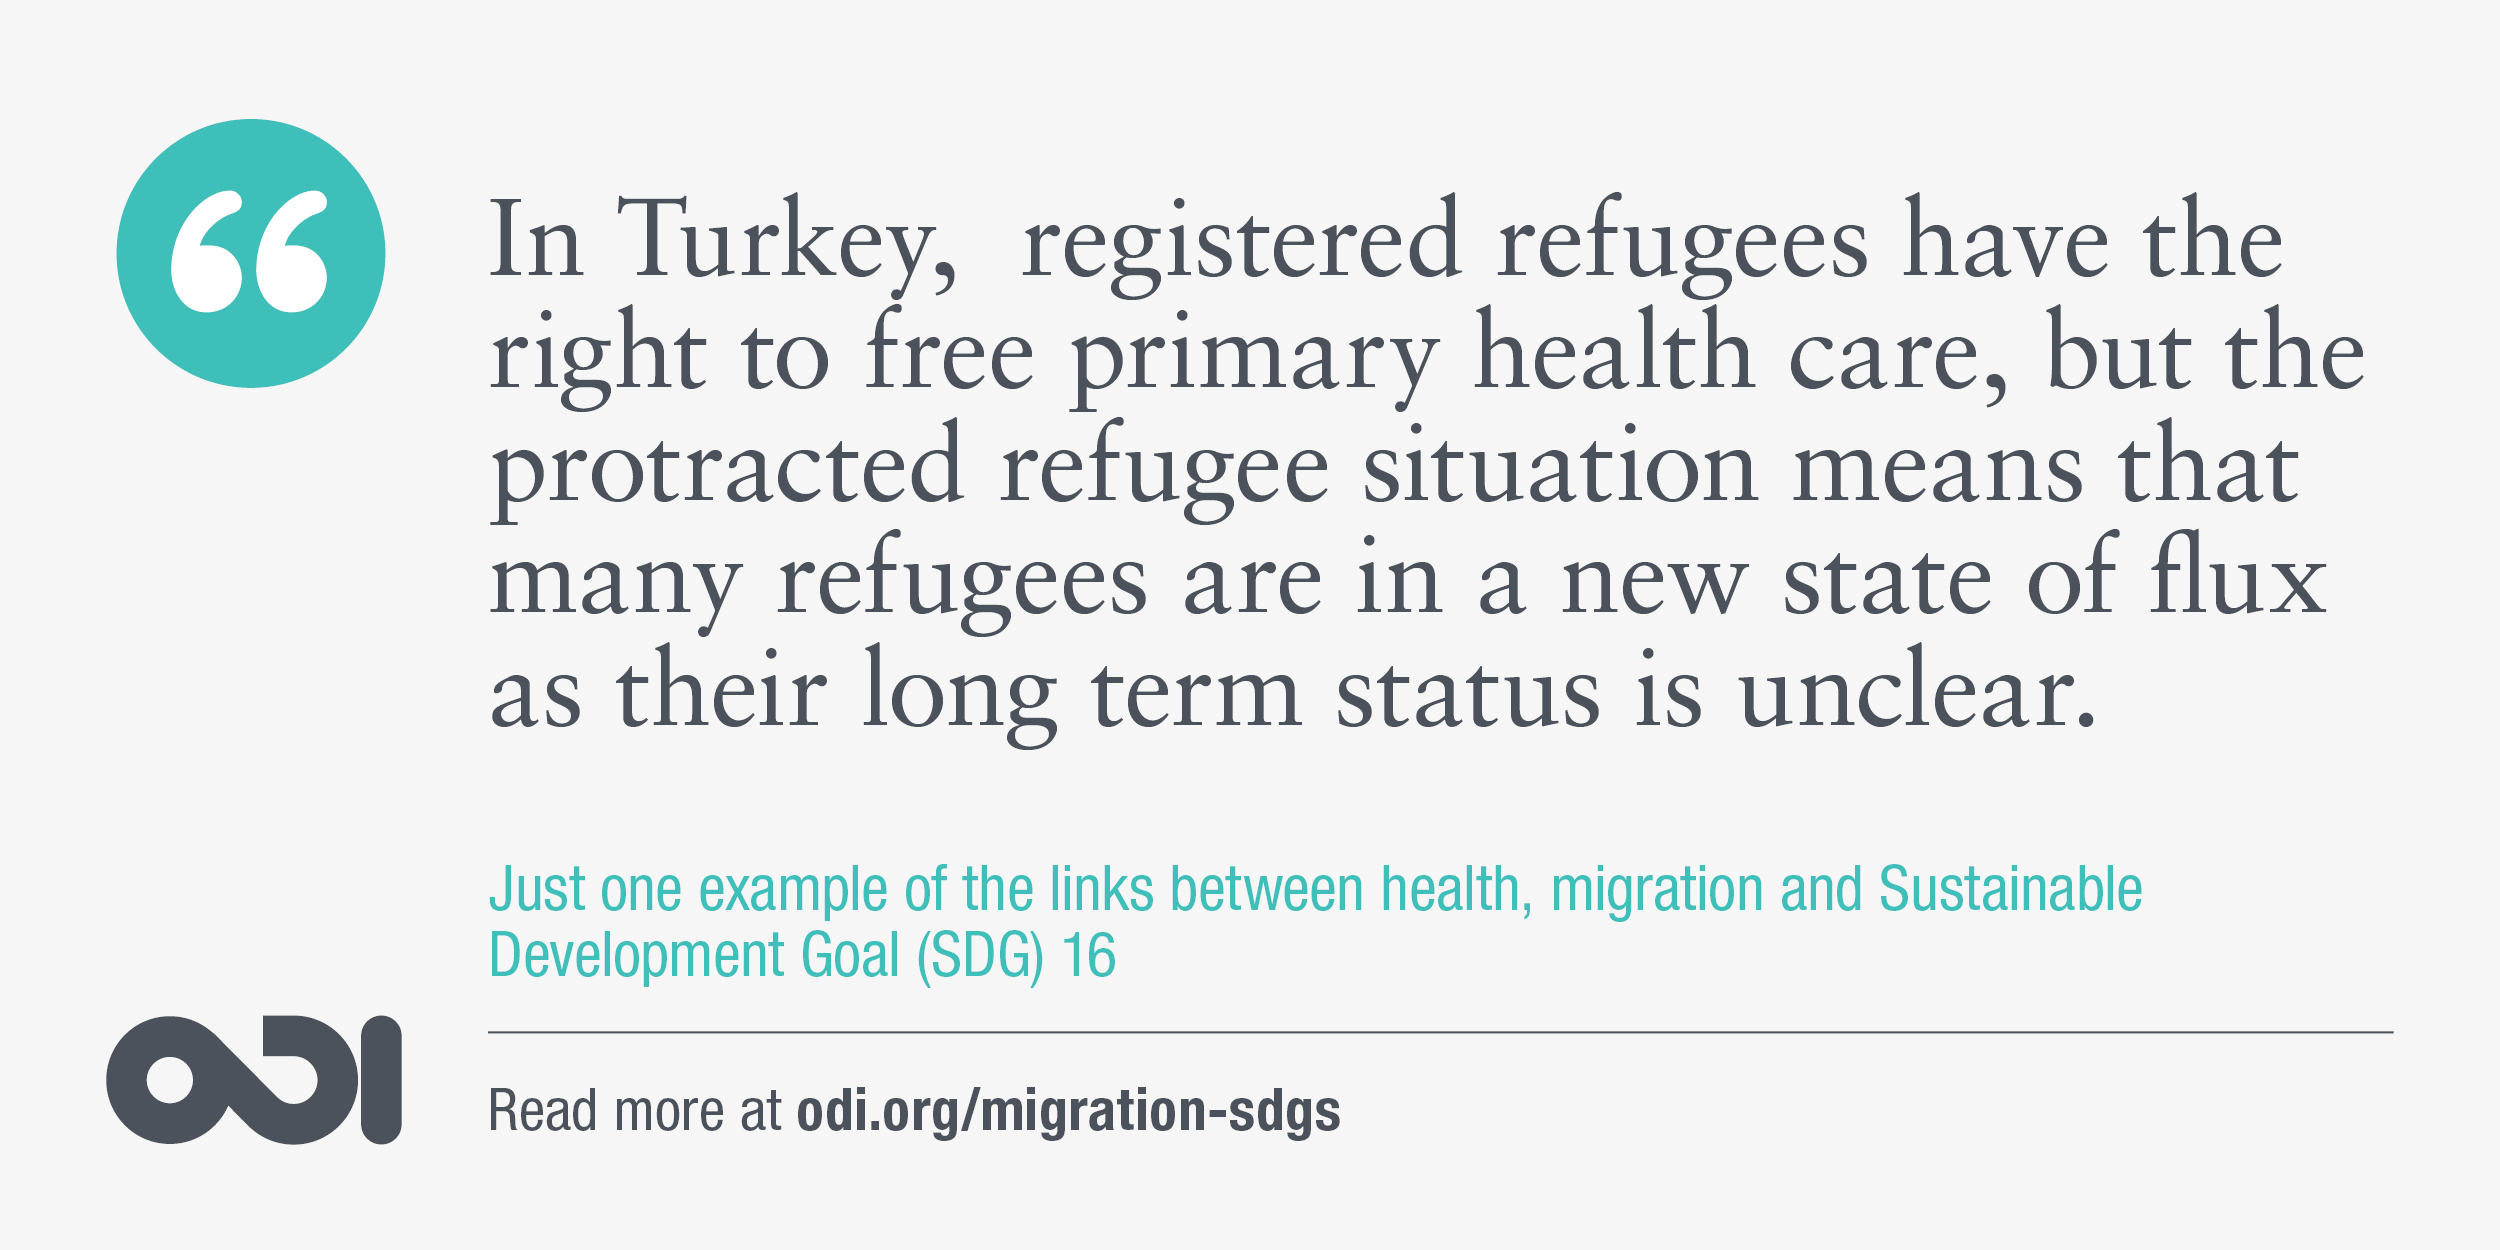 The links between health, migration and SDG 16.